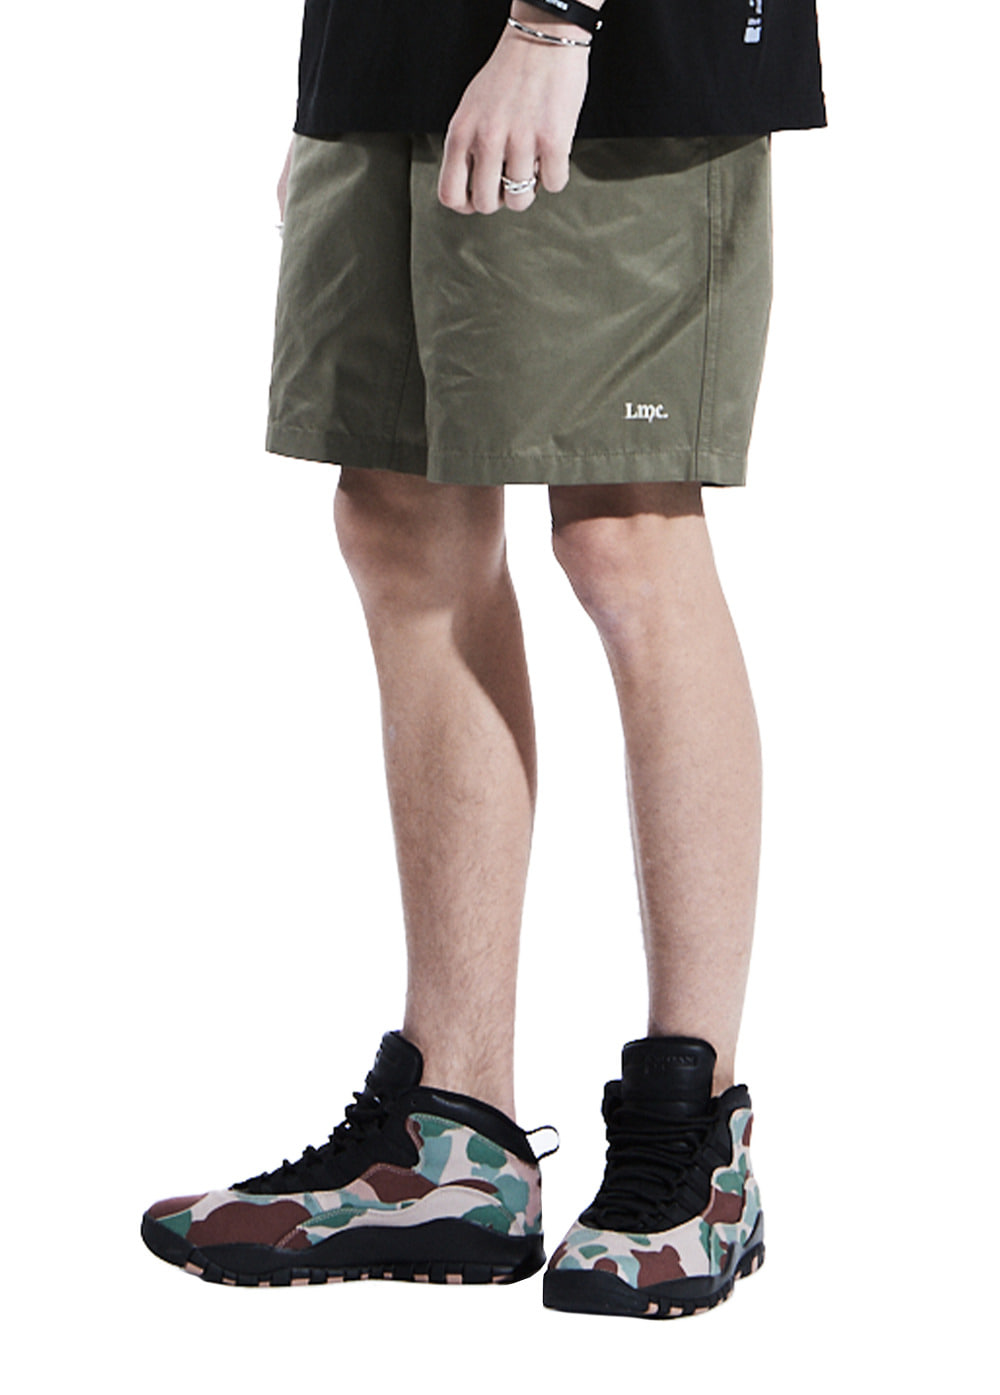 LMC PANELLED EASY SHORTS lt. olive